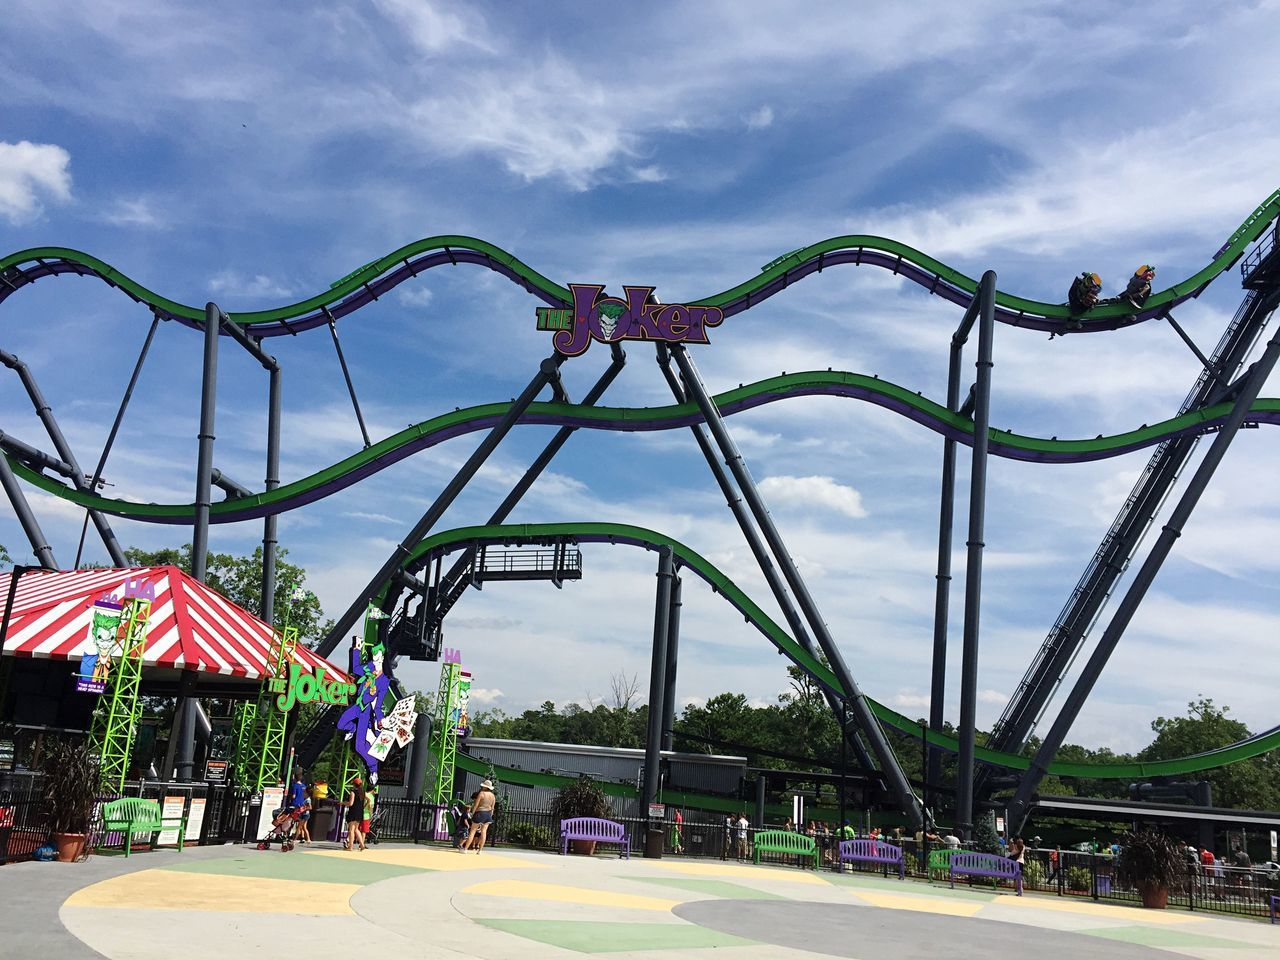 Ride in six flags amusement park, New York , USA Sky Cloud - Sky Day Outdoors City Tree No People Architecture rides fear fun screaming